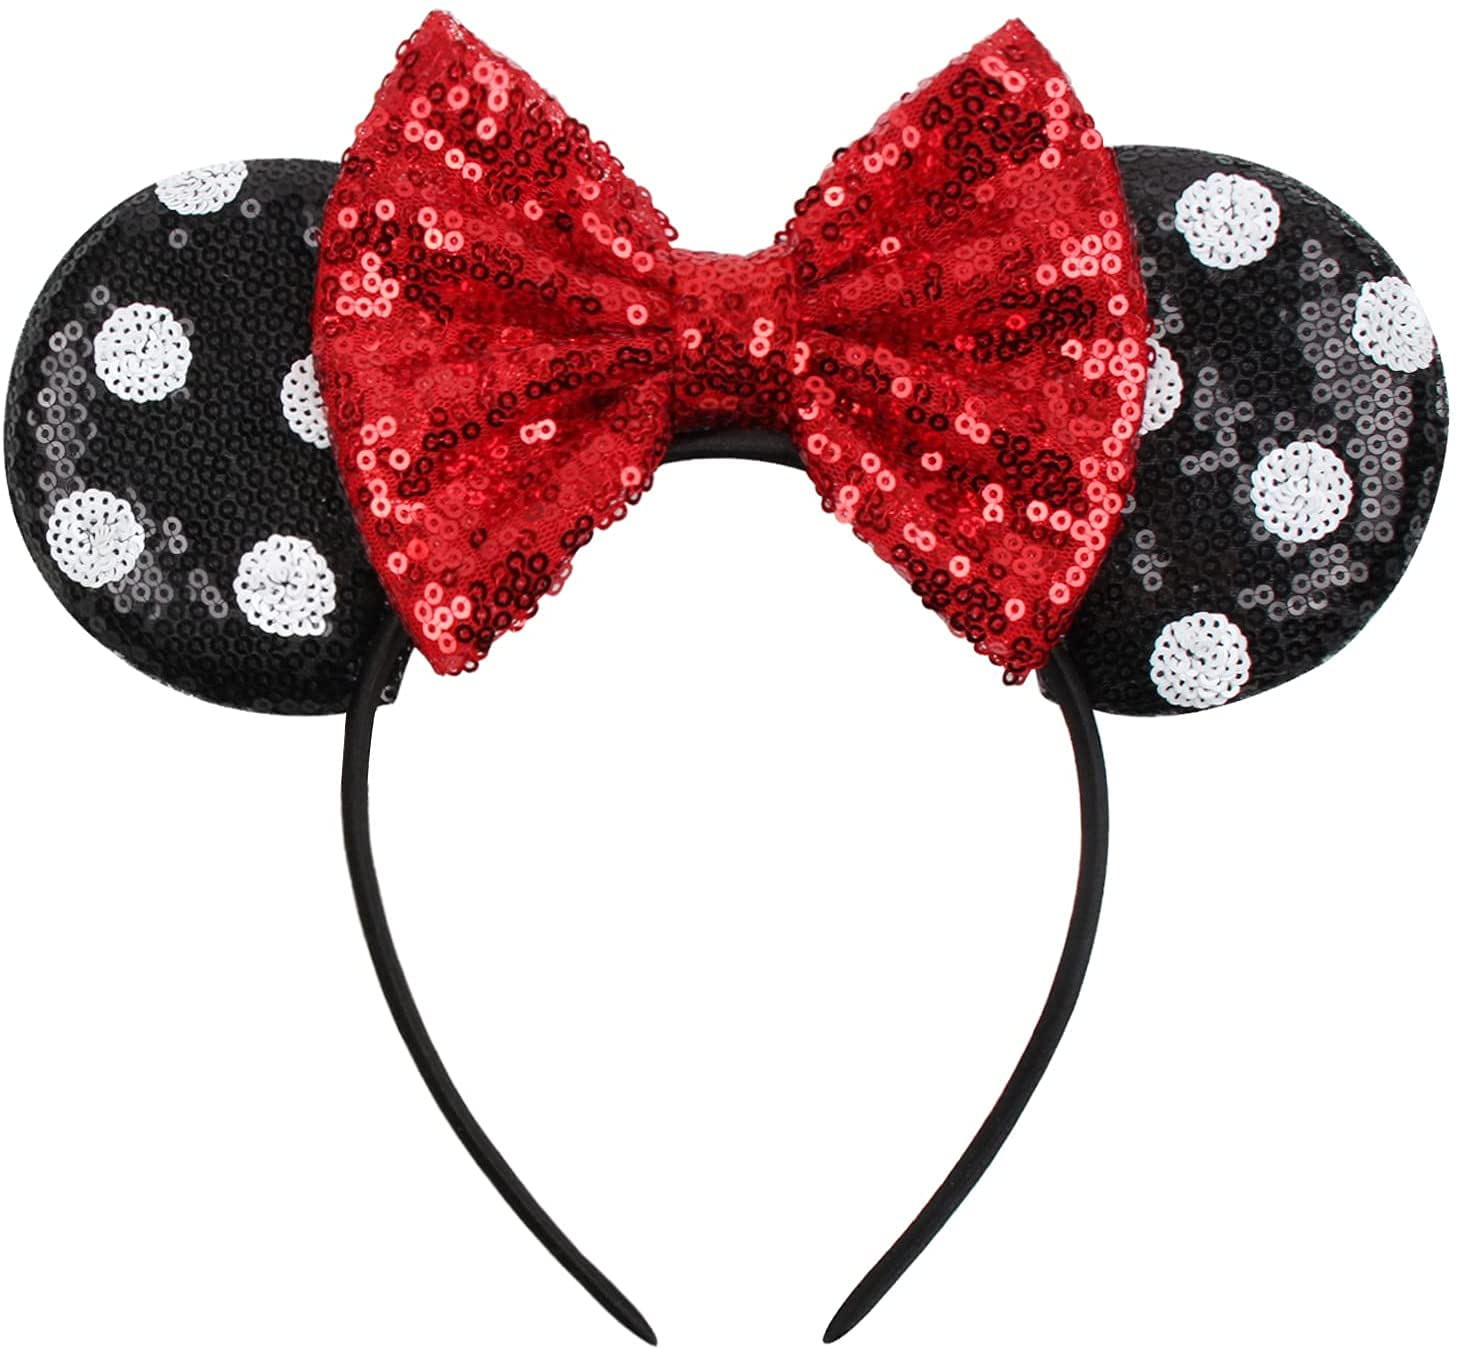 Mouse Ears Limited time sale Headbands with Bow Party Sequins and Cosplay Costume Sacramento Mall